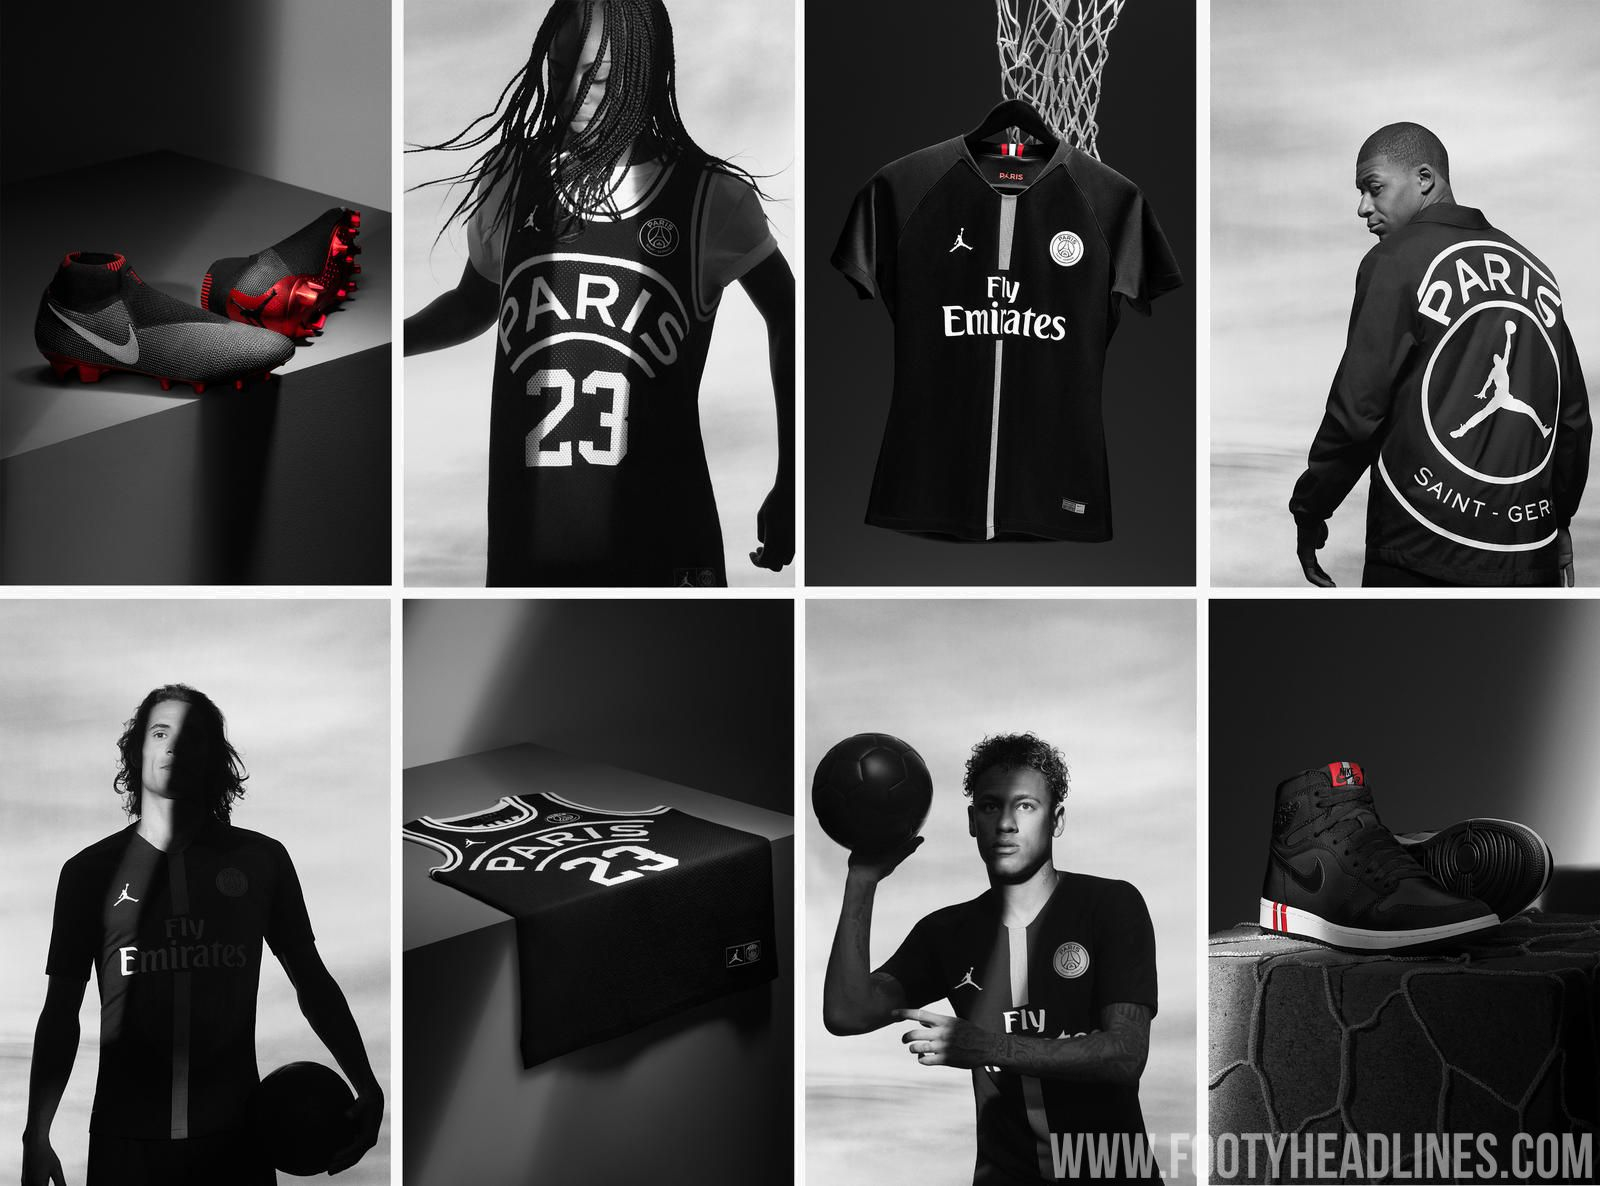 682a397100deae The full PSG Jordan collection was officially unveiled today